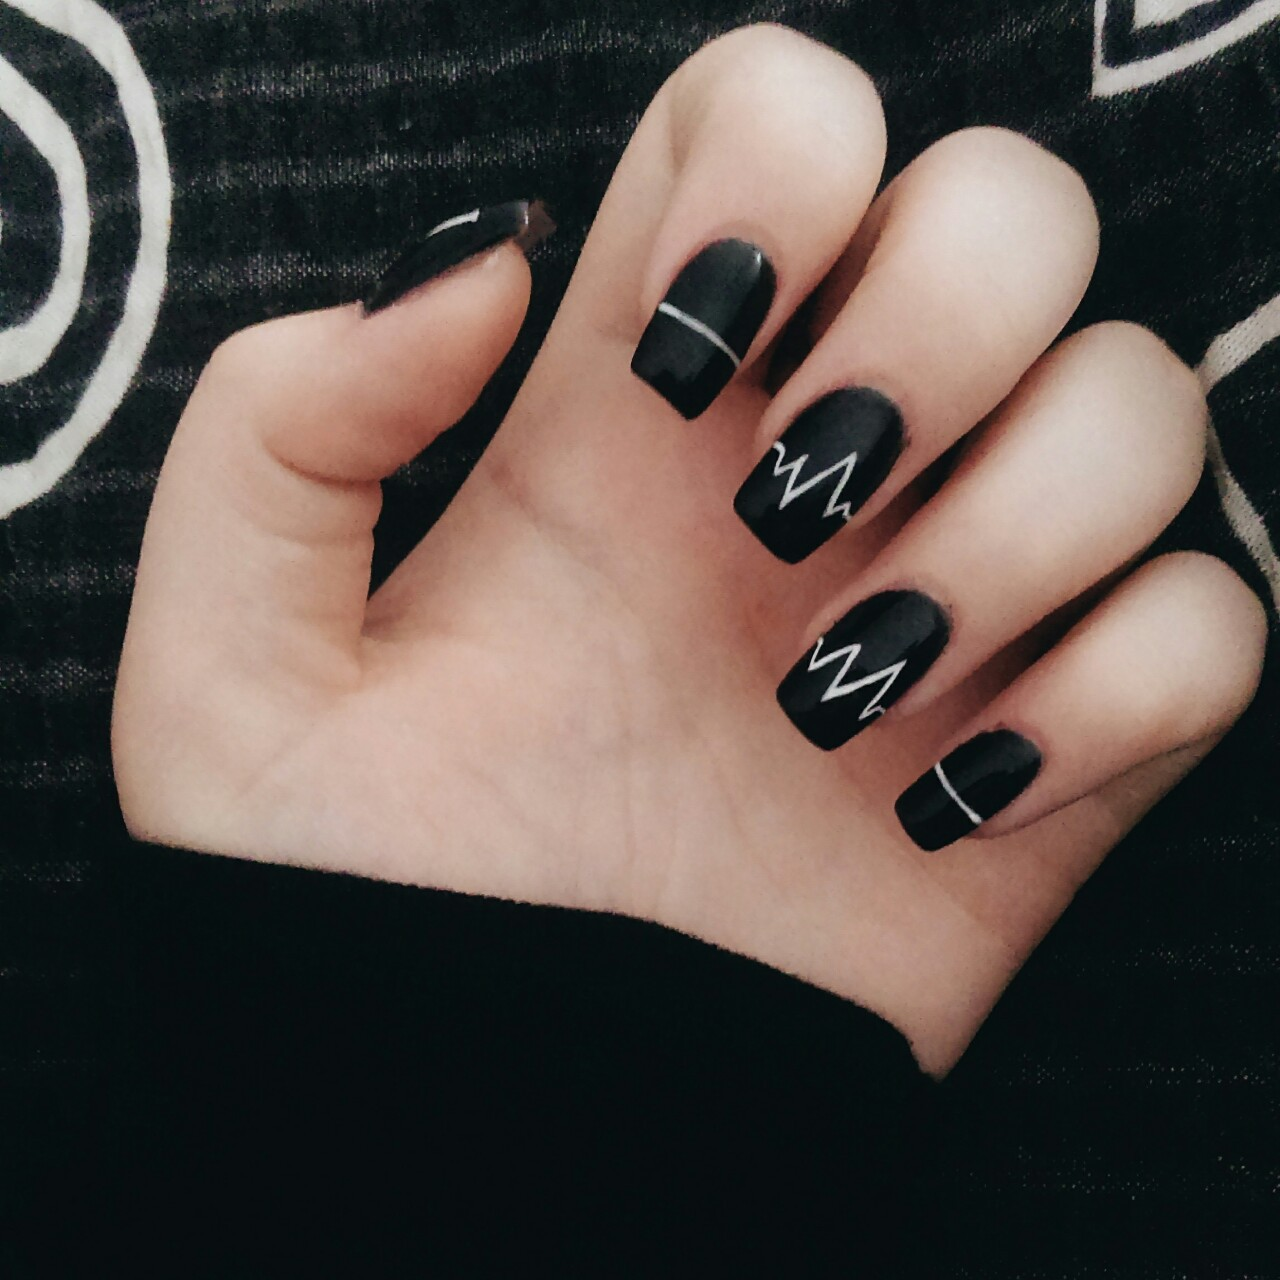 50 images about Nails on We Heart It | See more about nails, nail ...